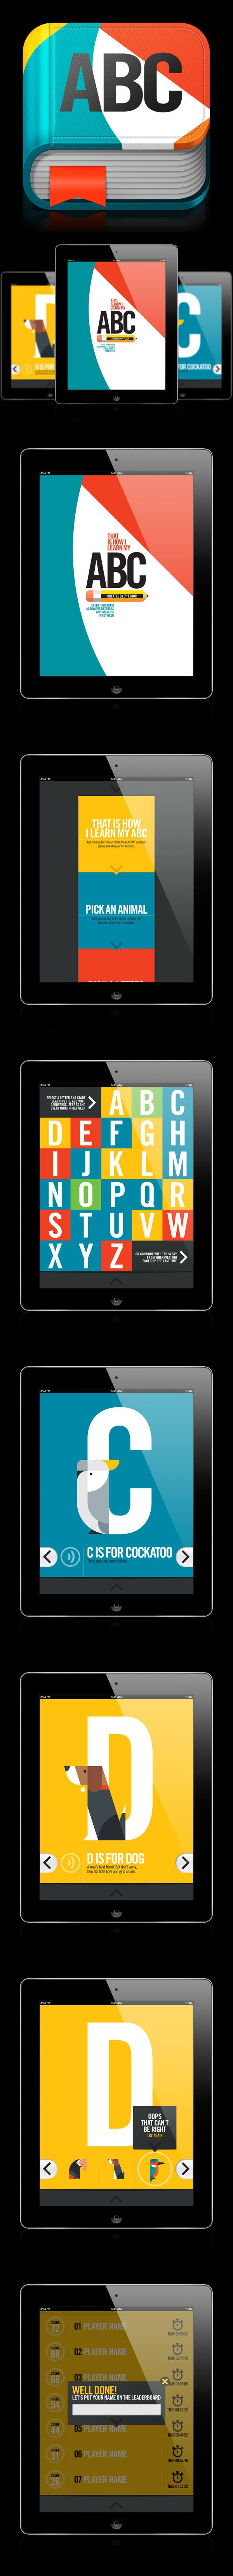 ABC iPad App by Bart De Keyzer, via Behance *** The design for an educational iPad application based on my ABC Project. Next to an interactive version of the book I designed earlier the application will feature 2 games. They should help children to learn the different letters in the alphabet in a playfull environment. Developement will take quite some time since this is a self initiated project which needs to be finished in between jobs, so keep watching this space for updates.